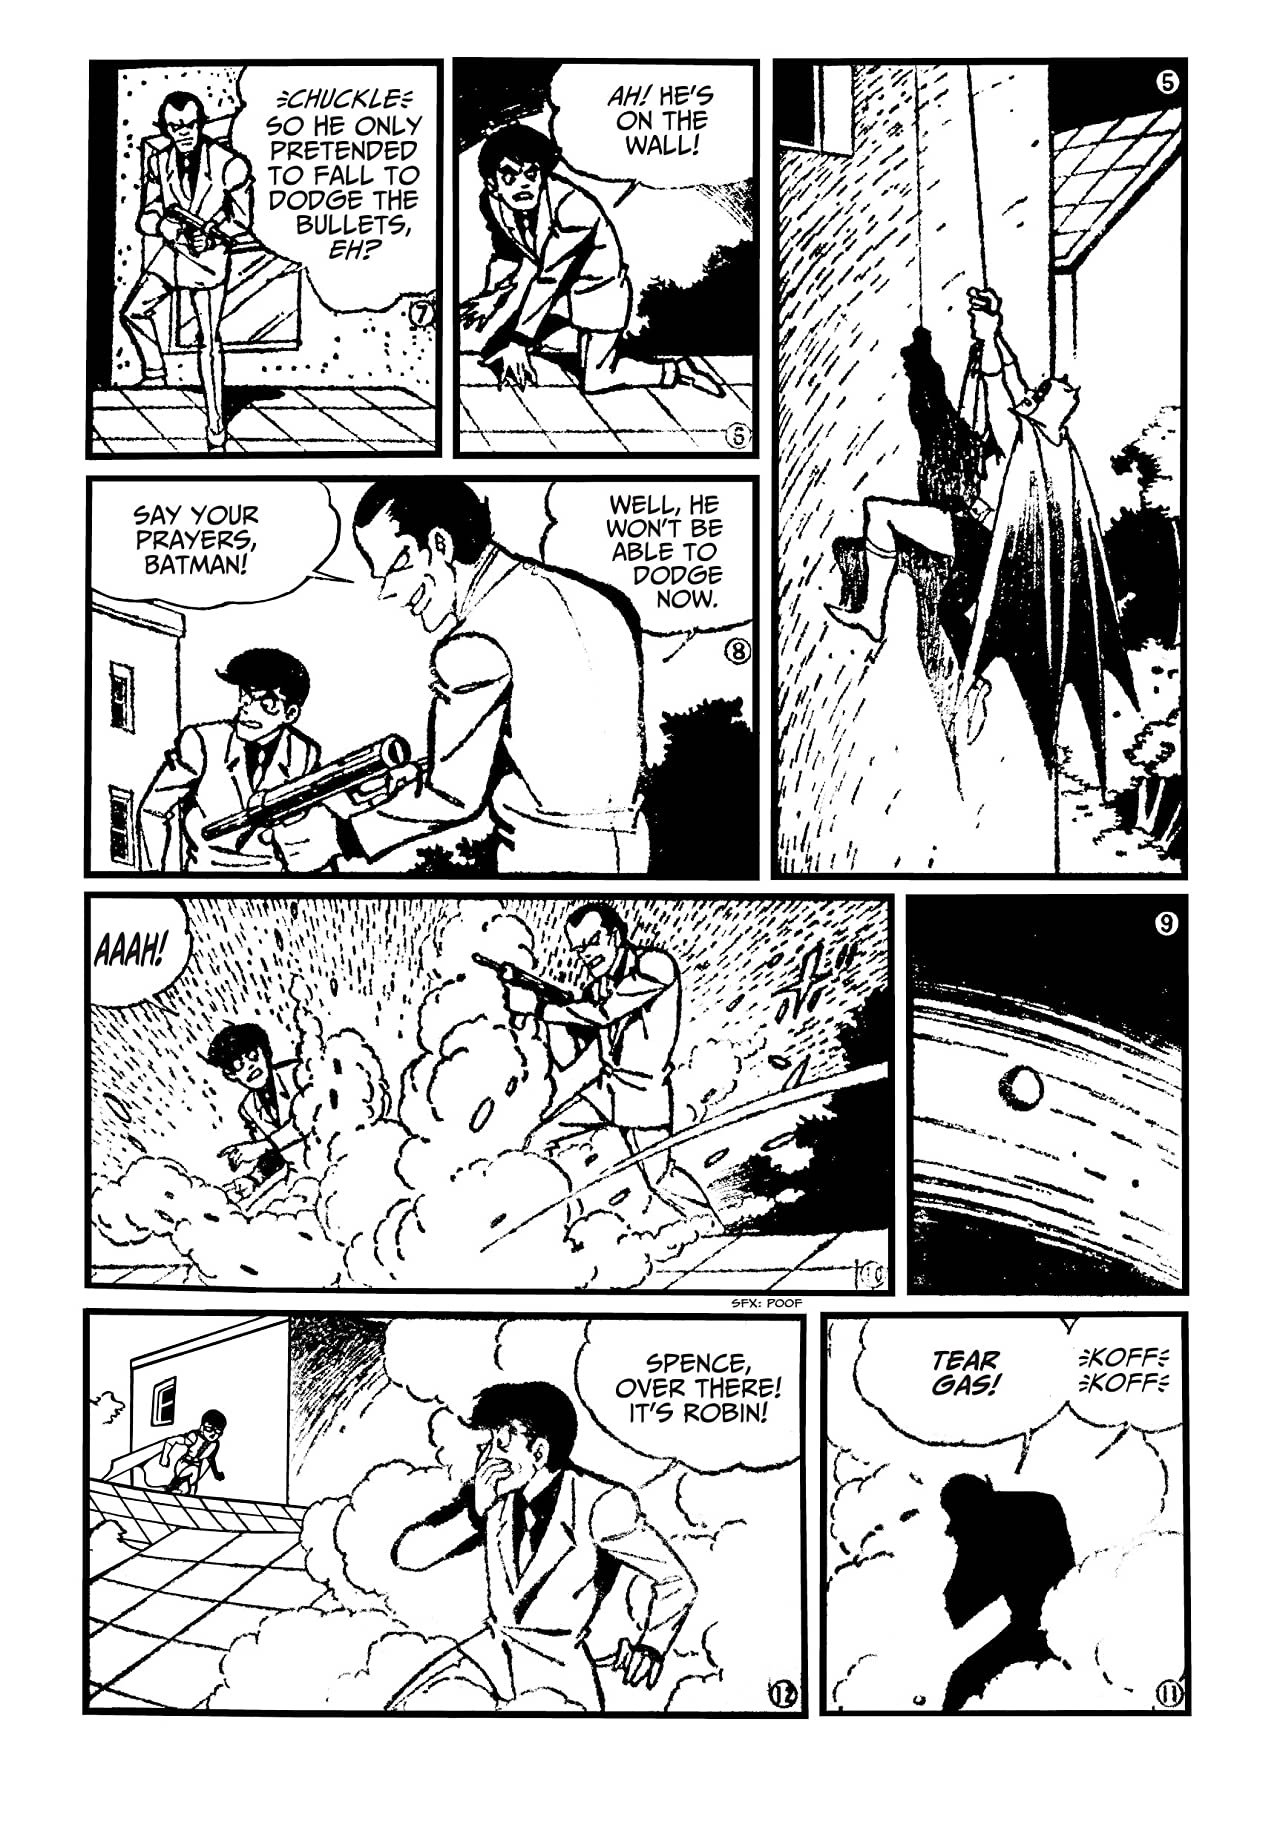 Batman: The Jiro Kuwata Batmanga #37